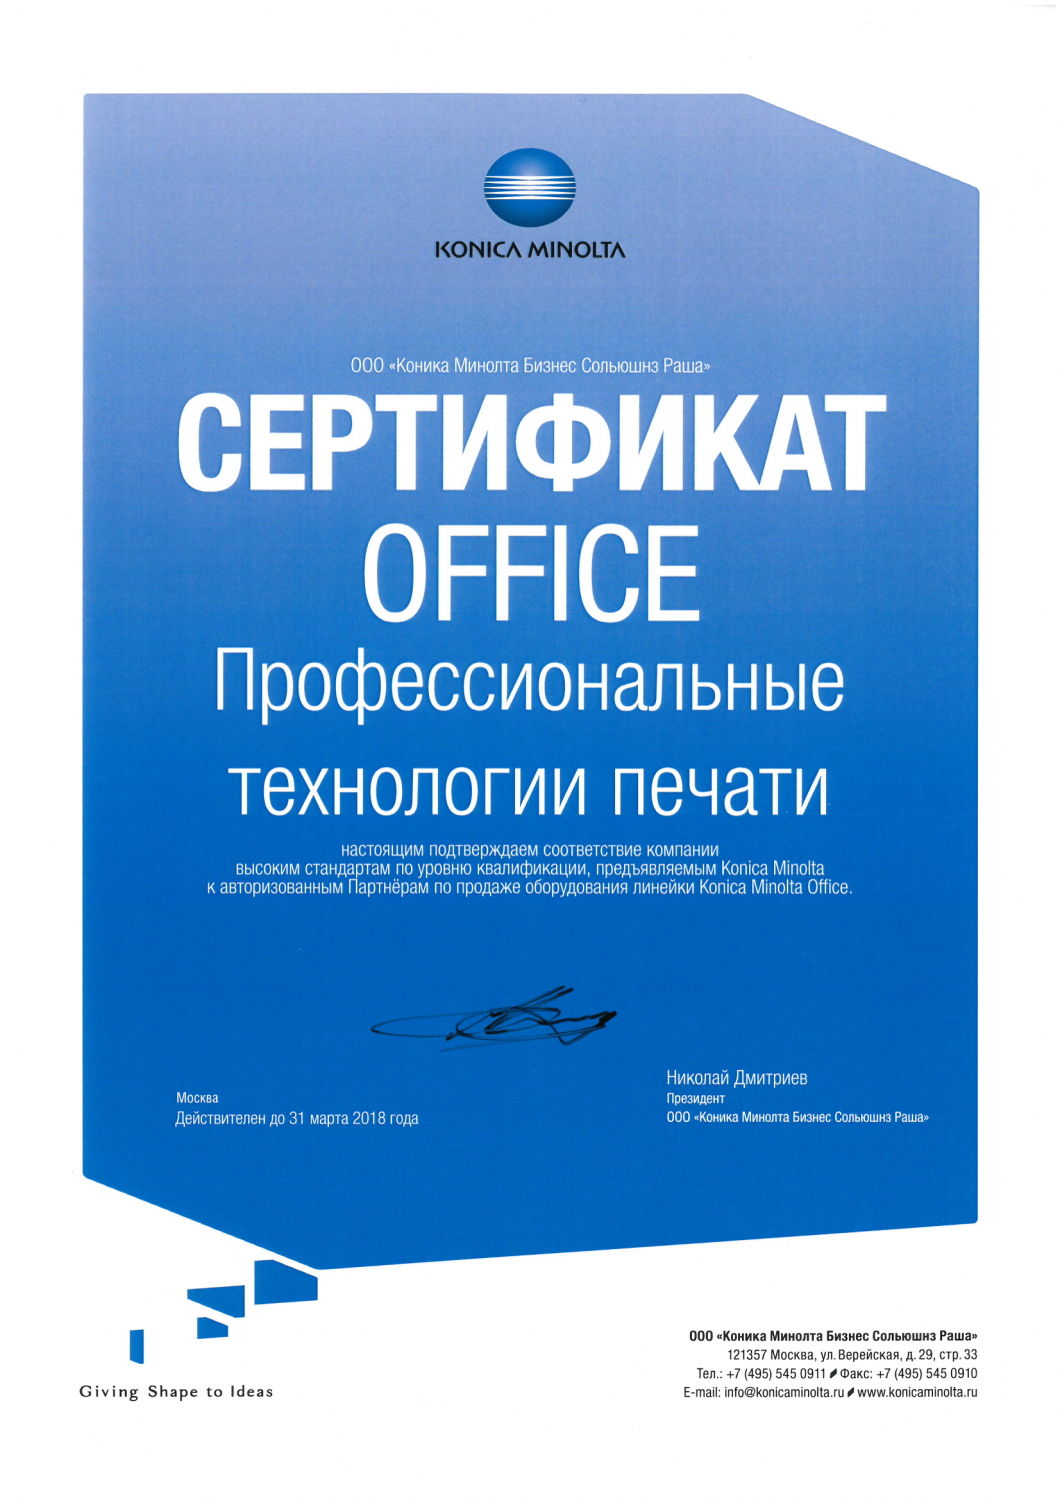 Сертификат Konica Minolta Office